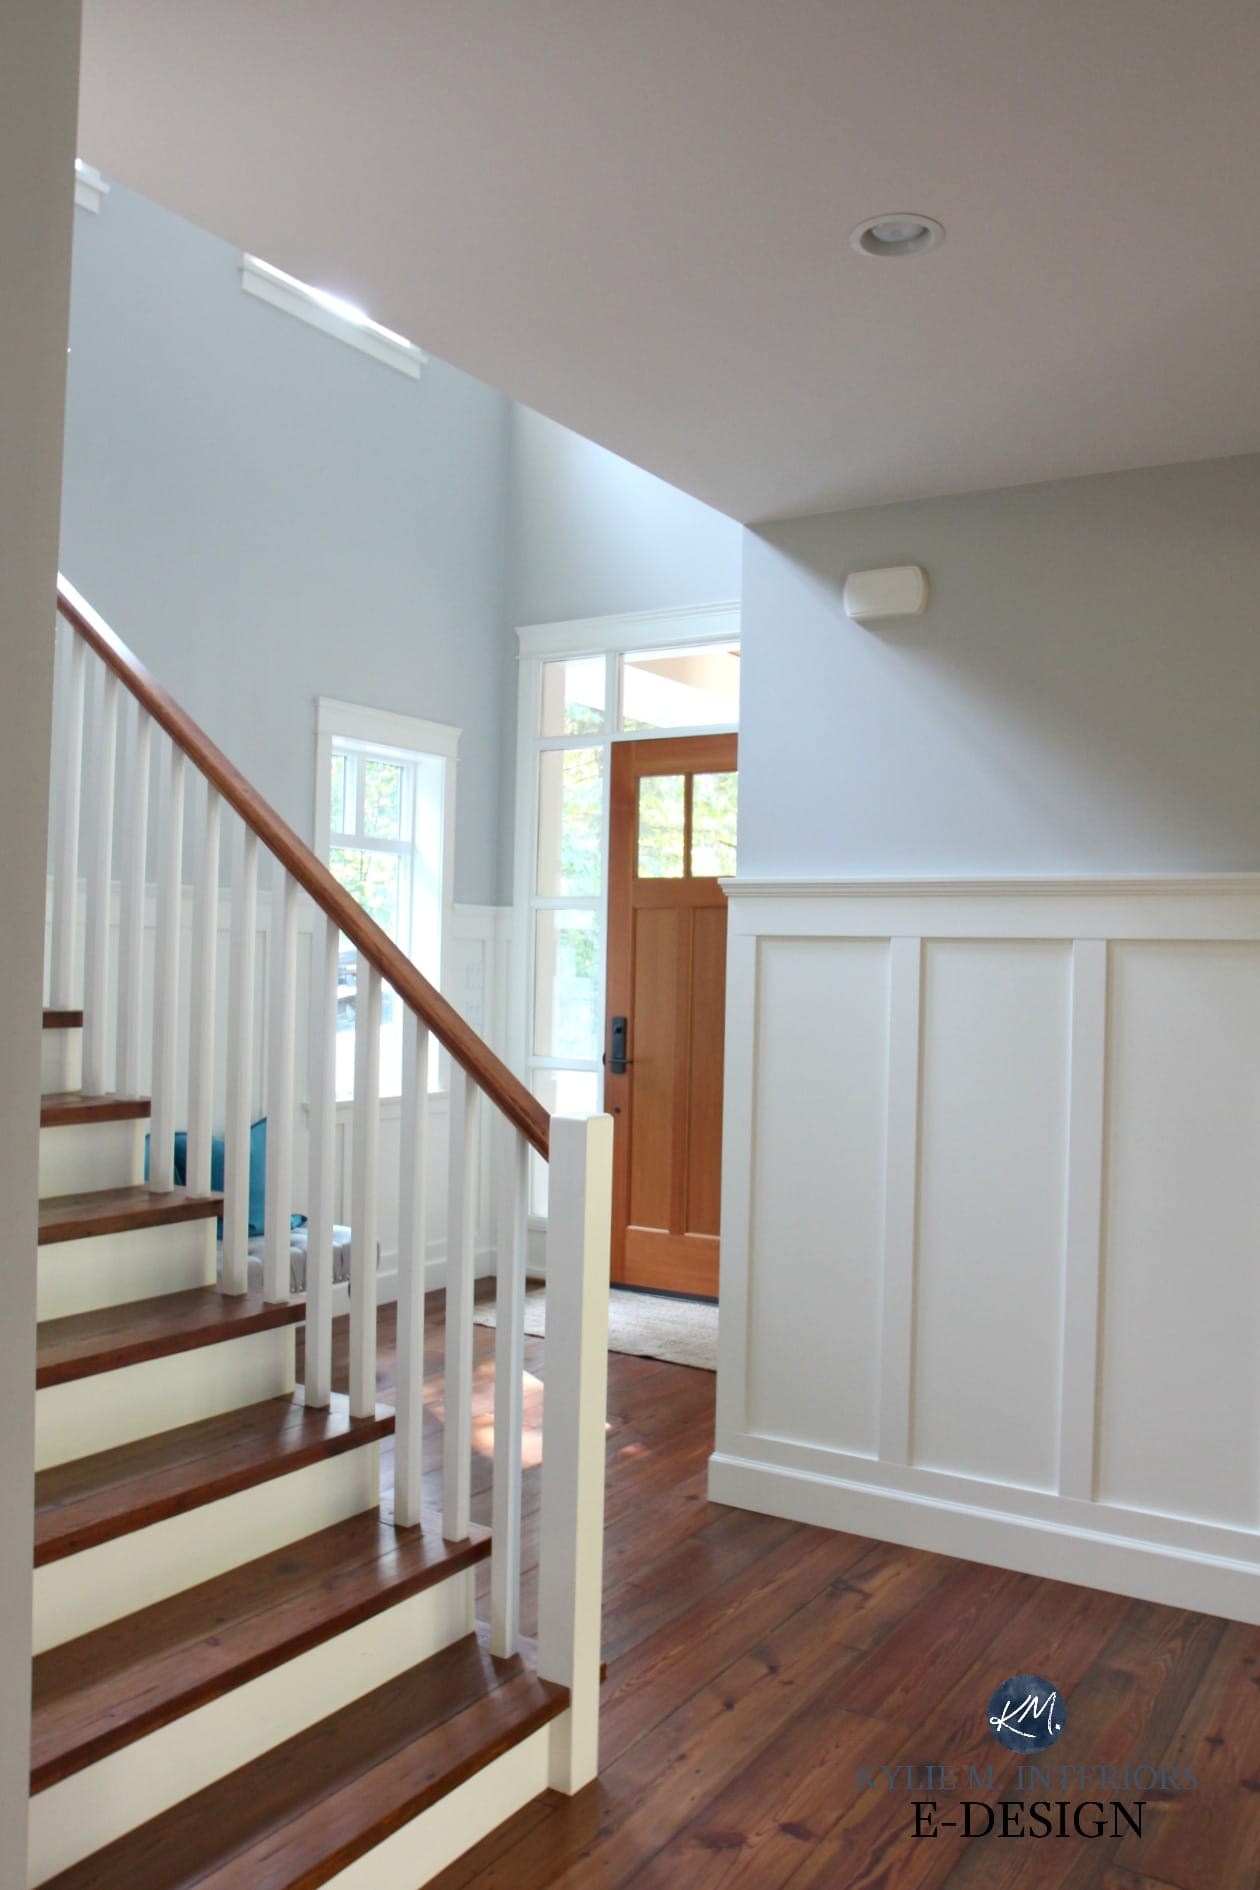 Entryway Stairwell Reclaimed Pine Wood Flooring Treads White Railing Wainscoting Benjamin Moore Cloud And Gray Owl Kylie M Interiors